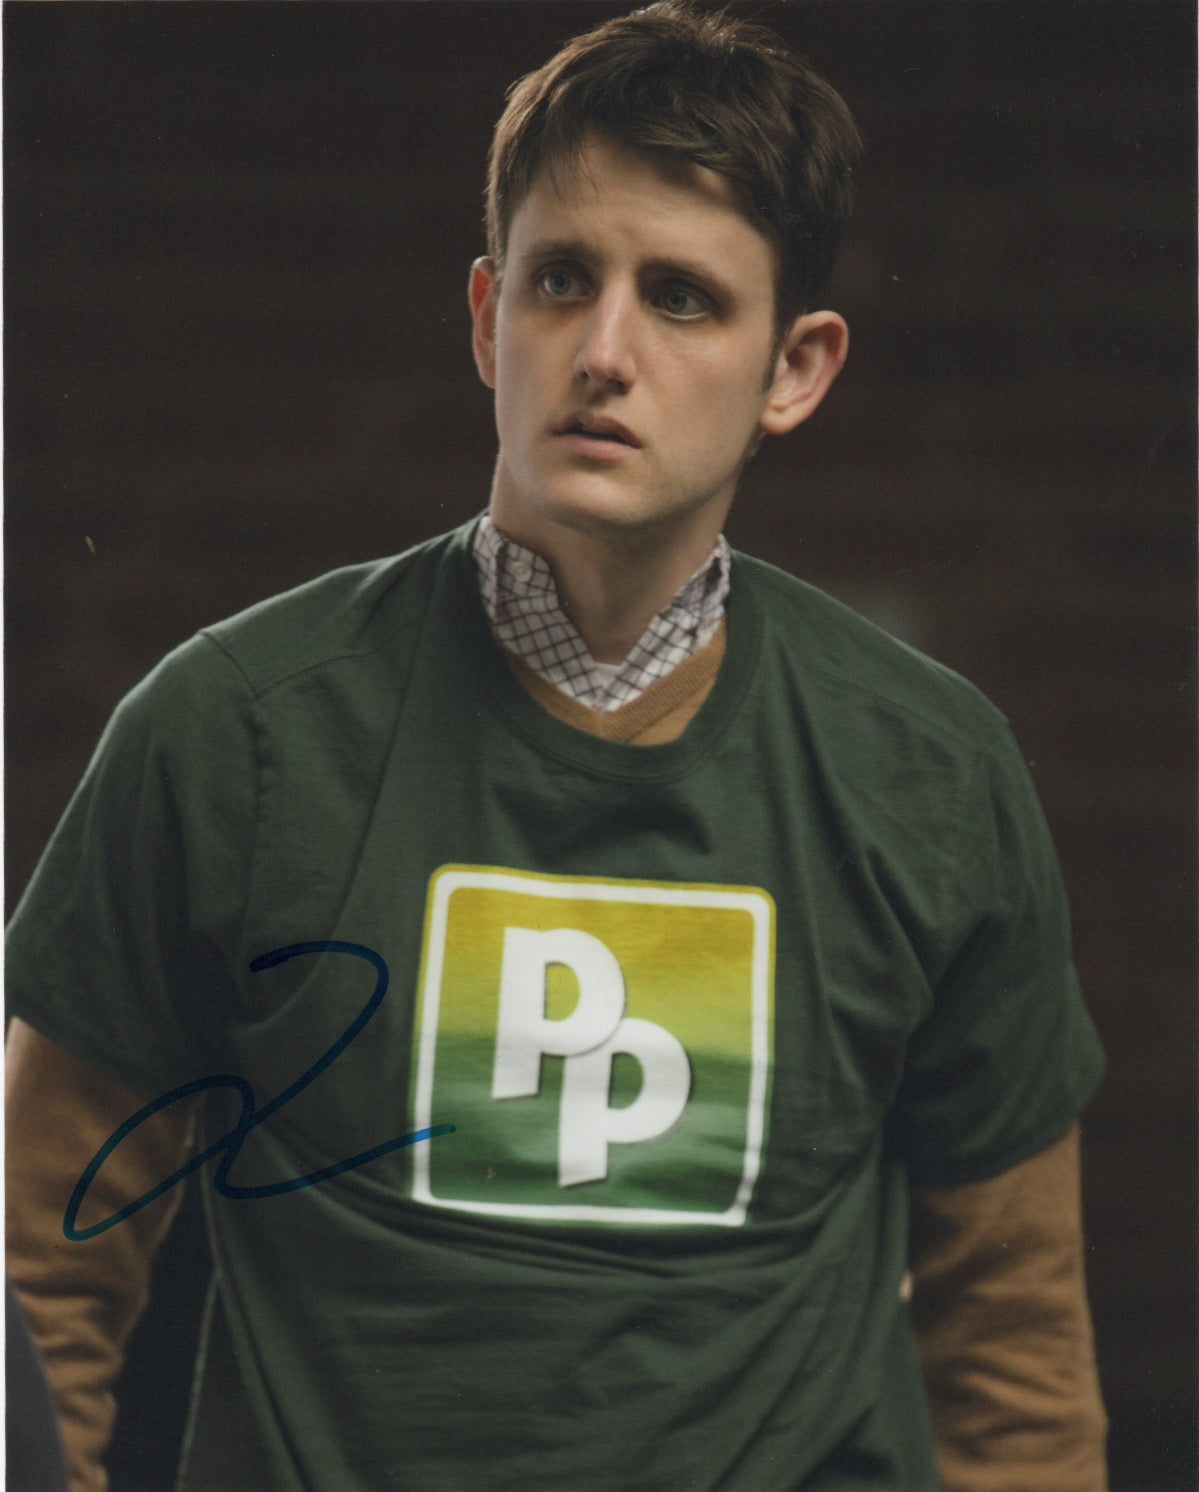 Zach Woods Silicon Valley Signed Autograph 8x10 Photo #3 - Outlaw Hobbies Authentic Autographs